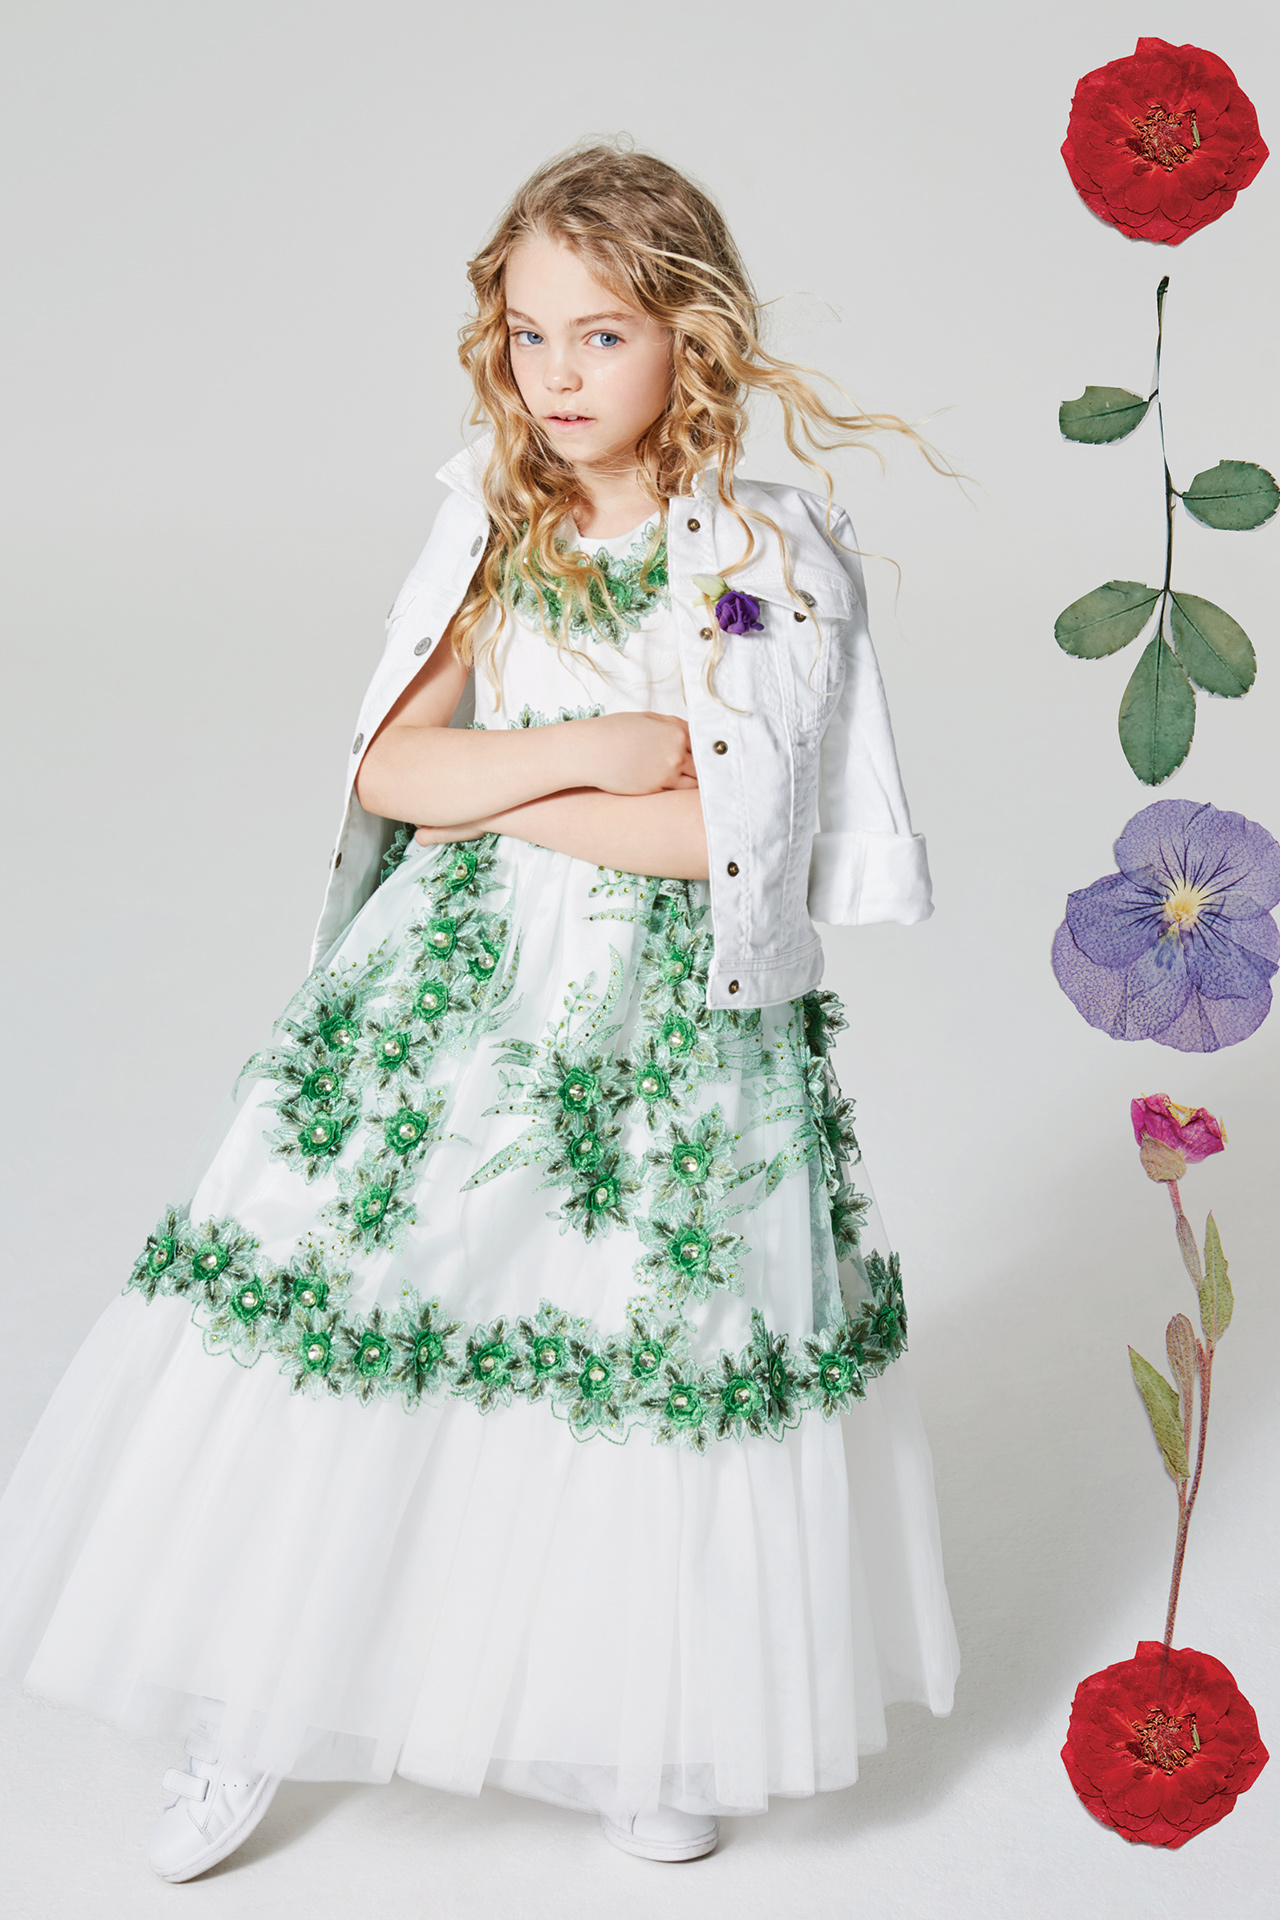 Floral kids fashion girl 10 Emma Tunbridge